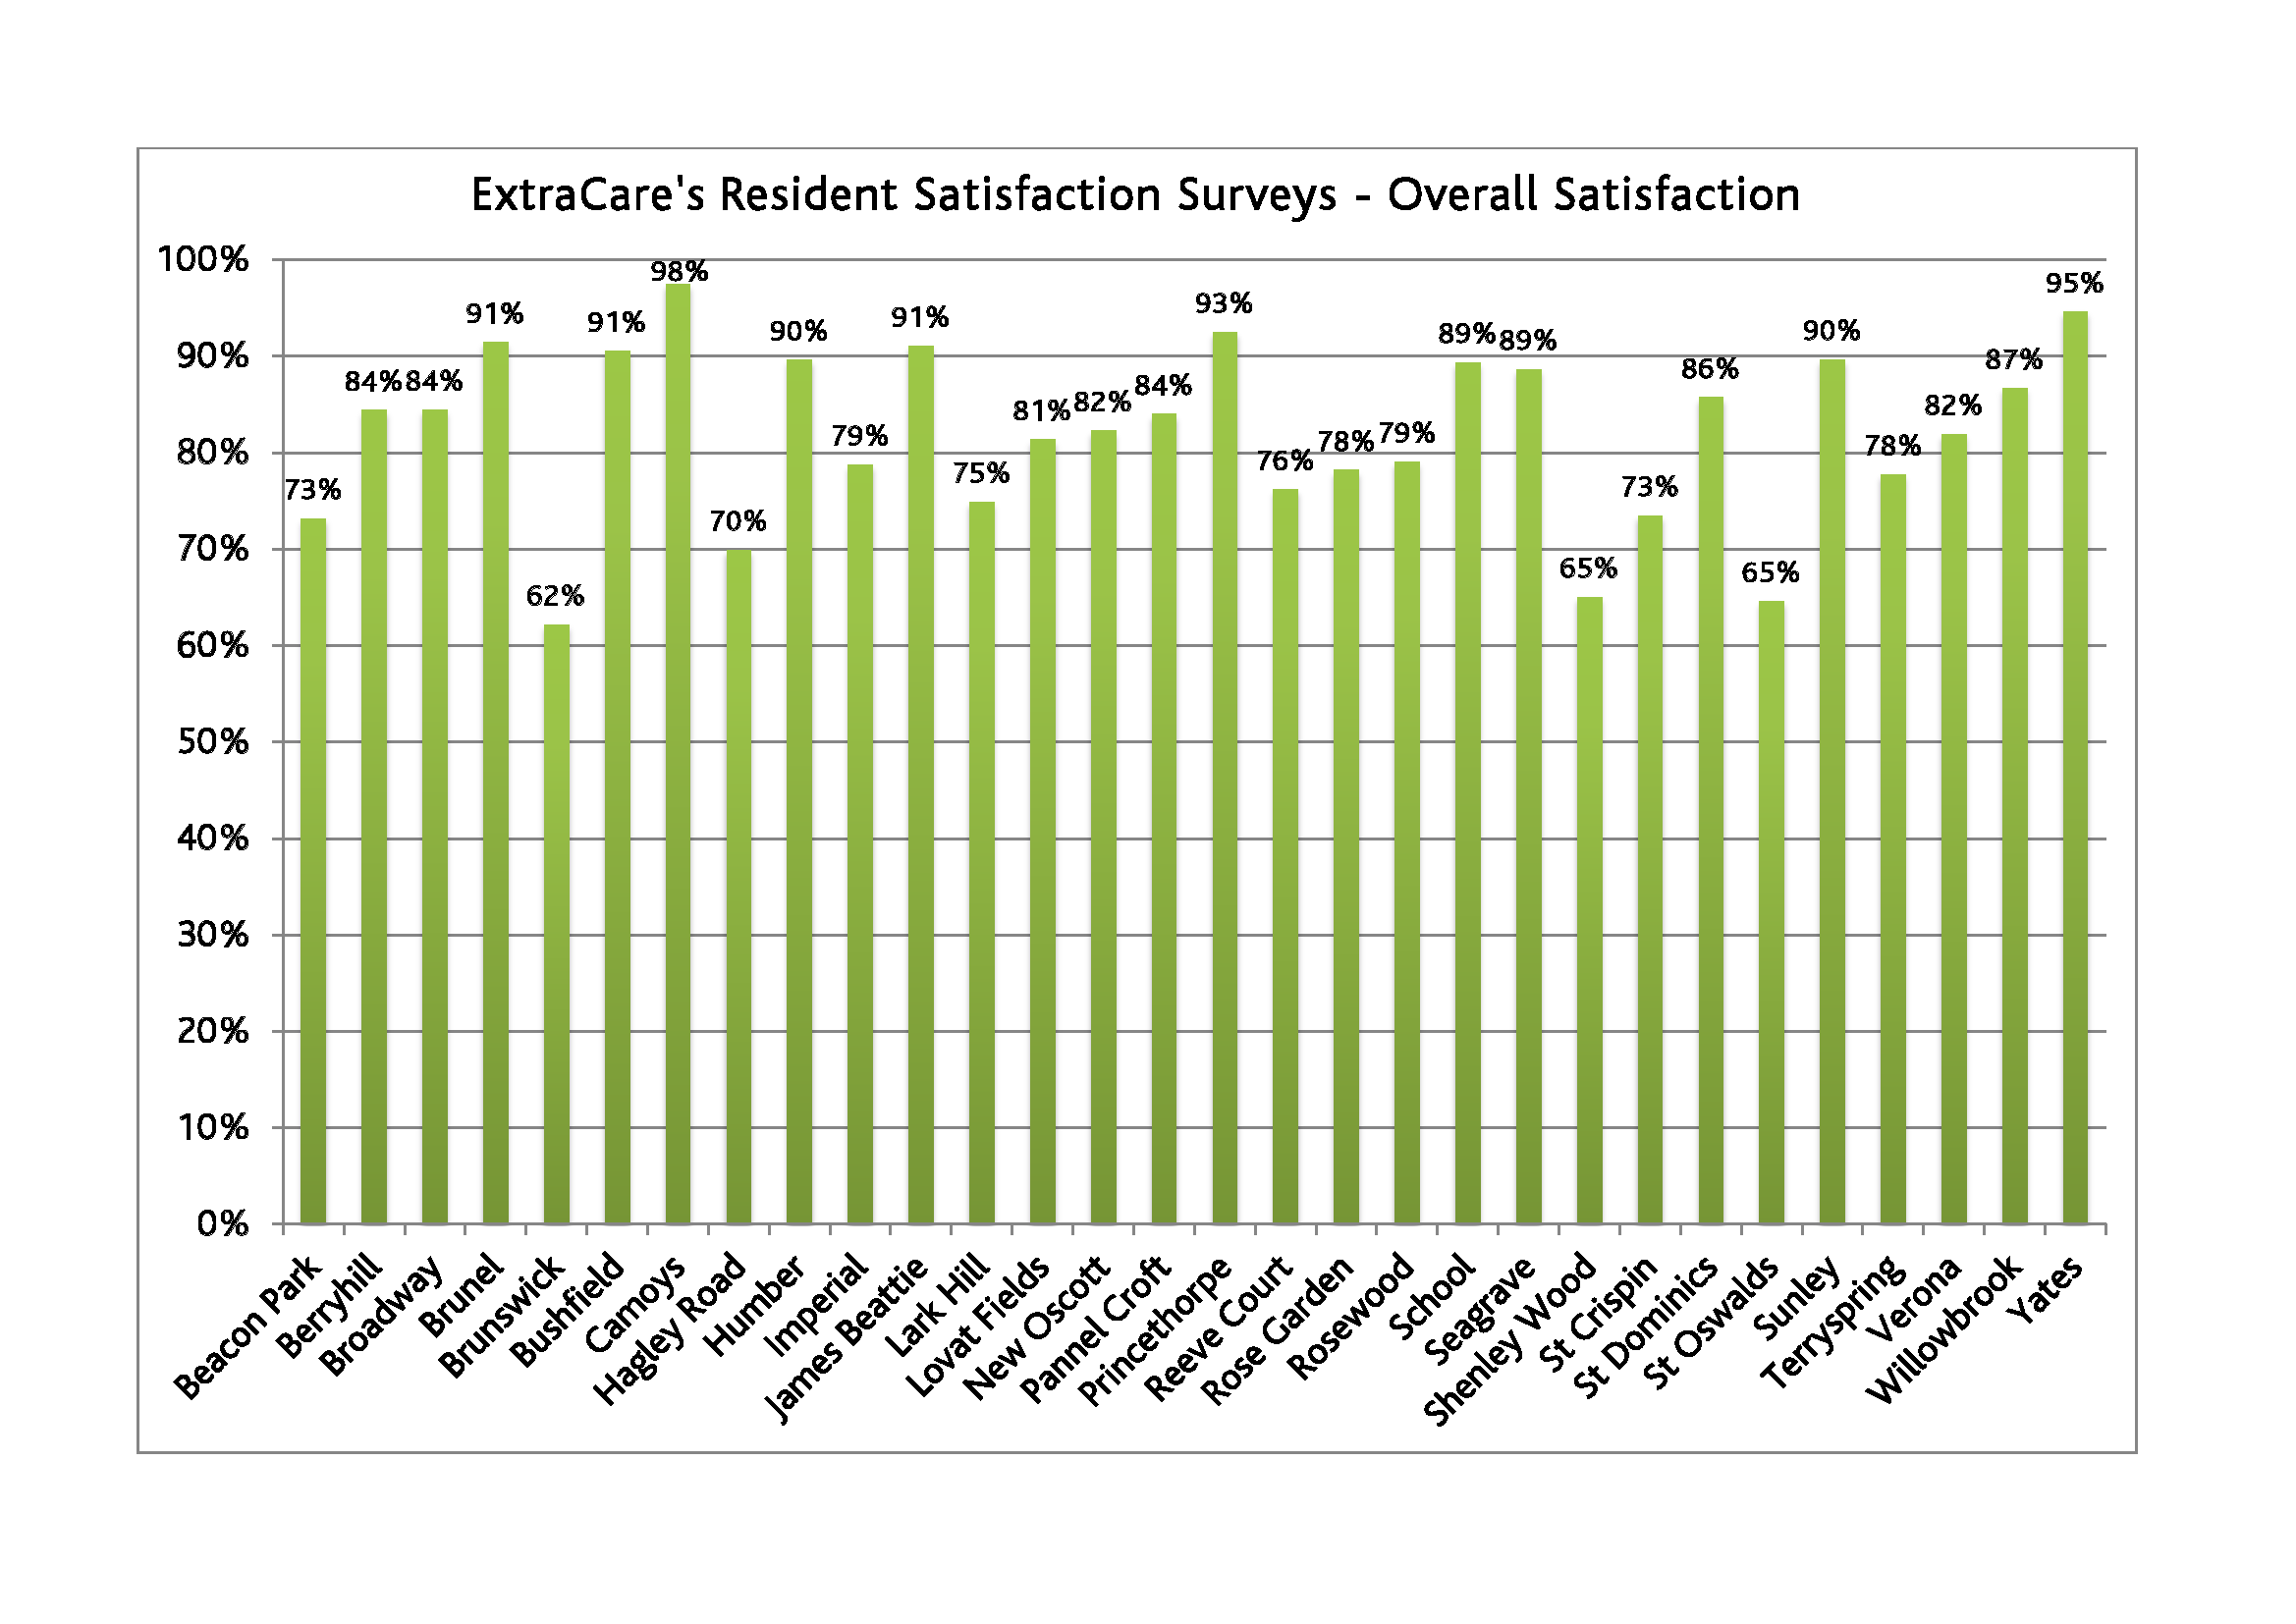 Overall Satisfaction Graph - All Locations - Resident Satisfaction Surveys 2011-15